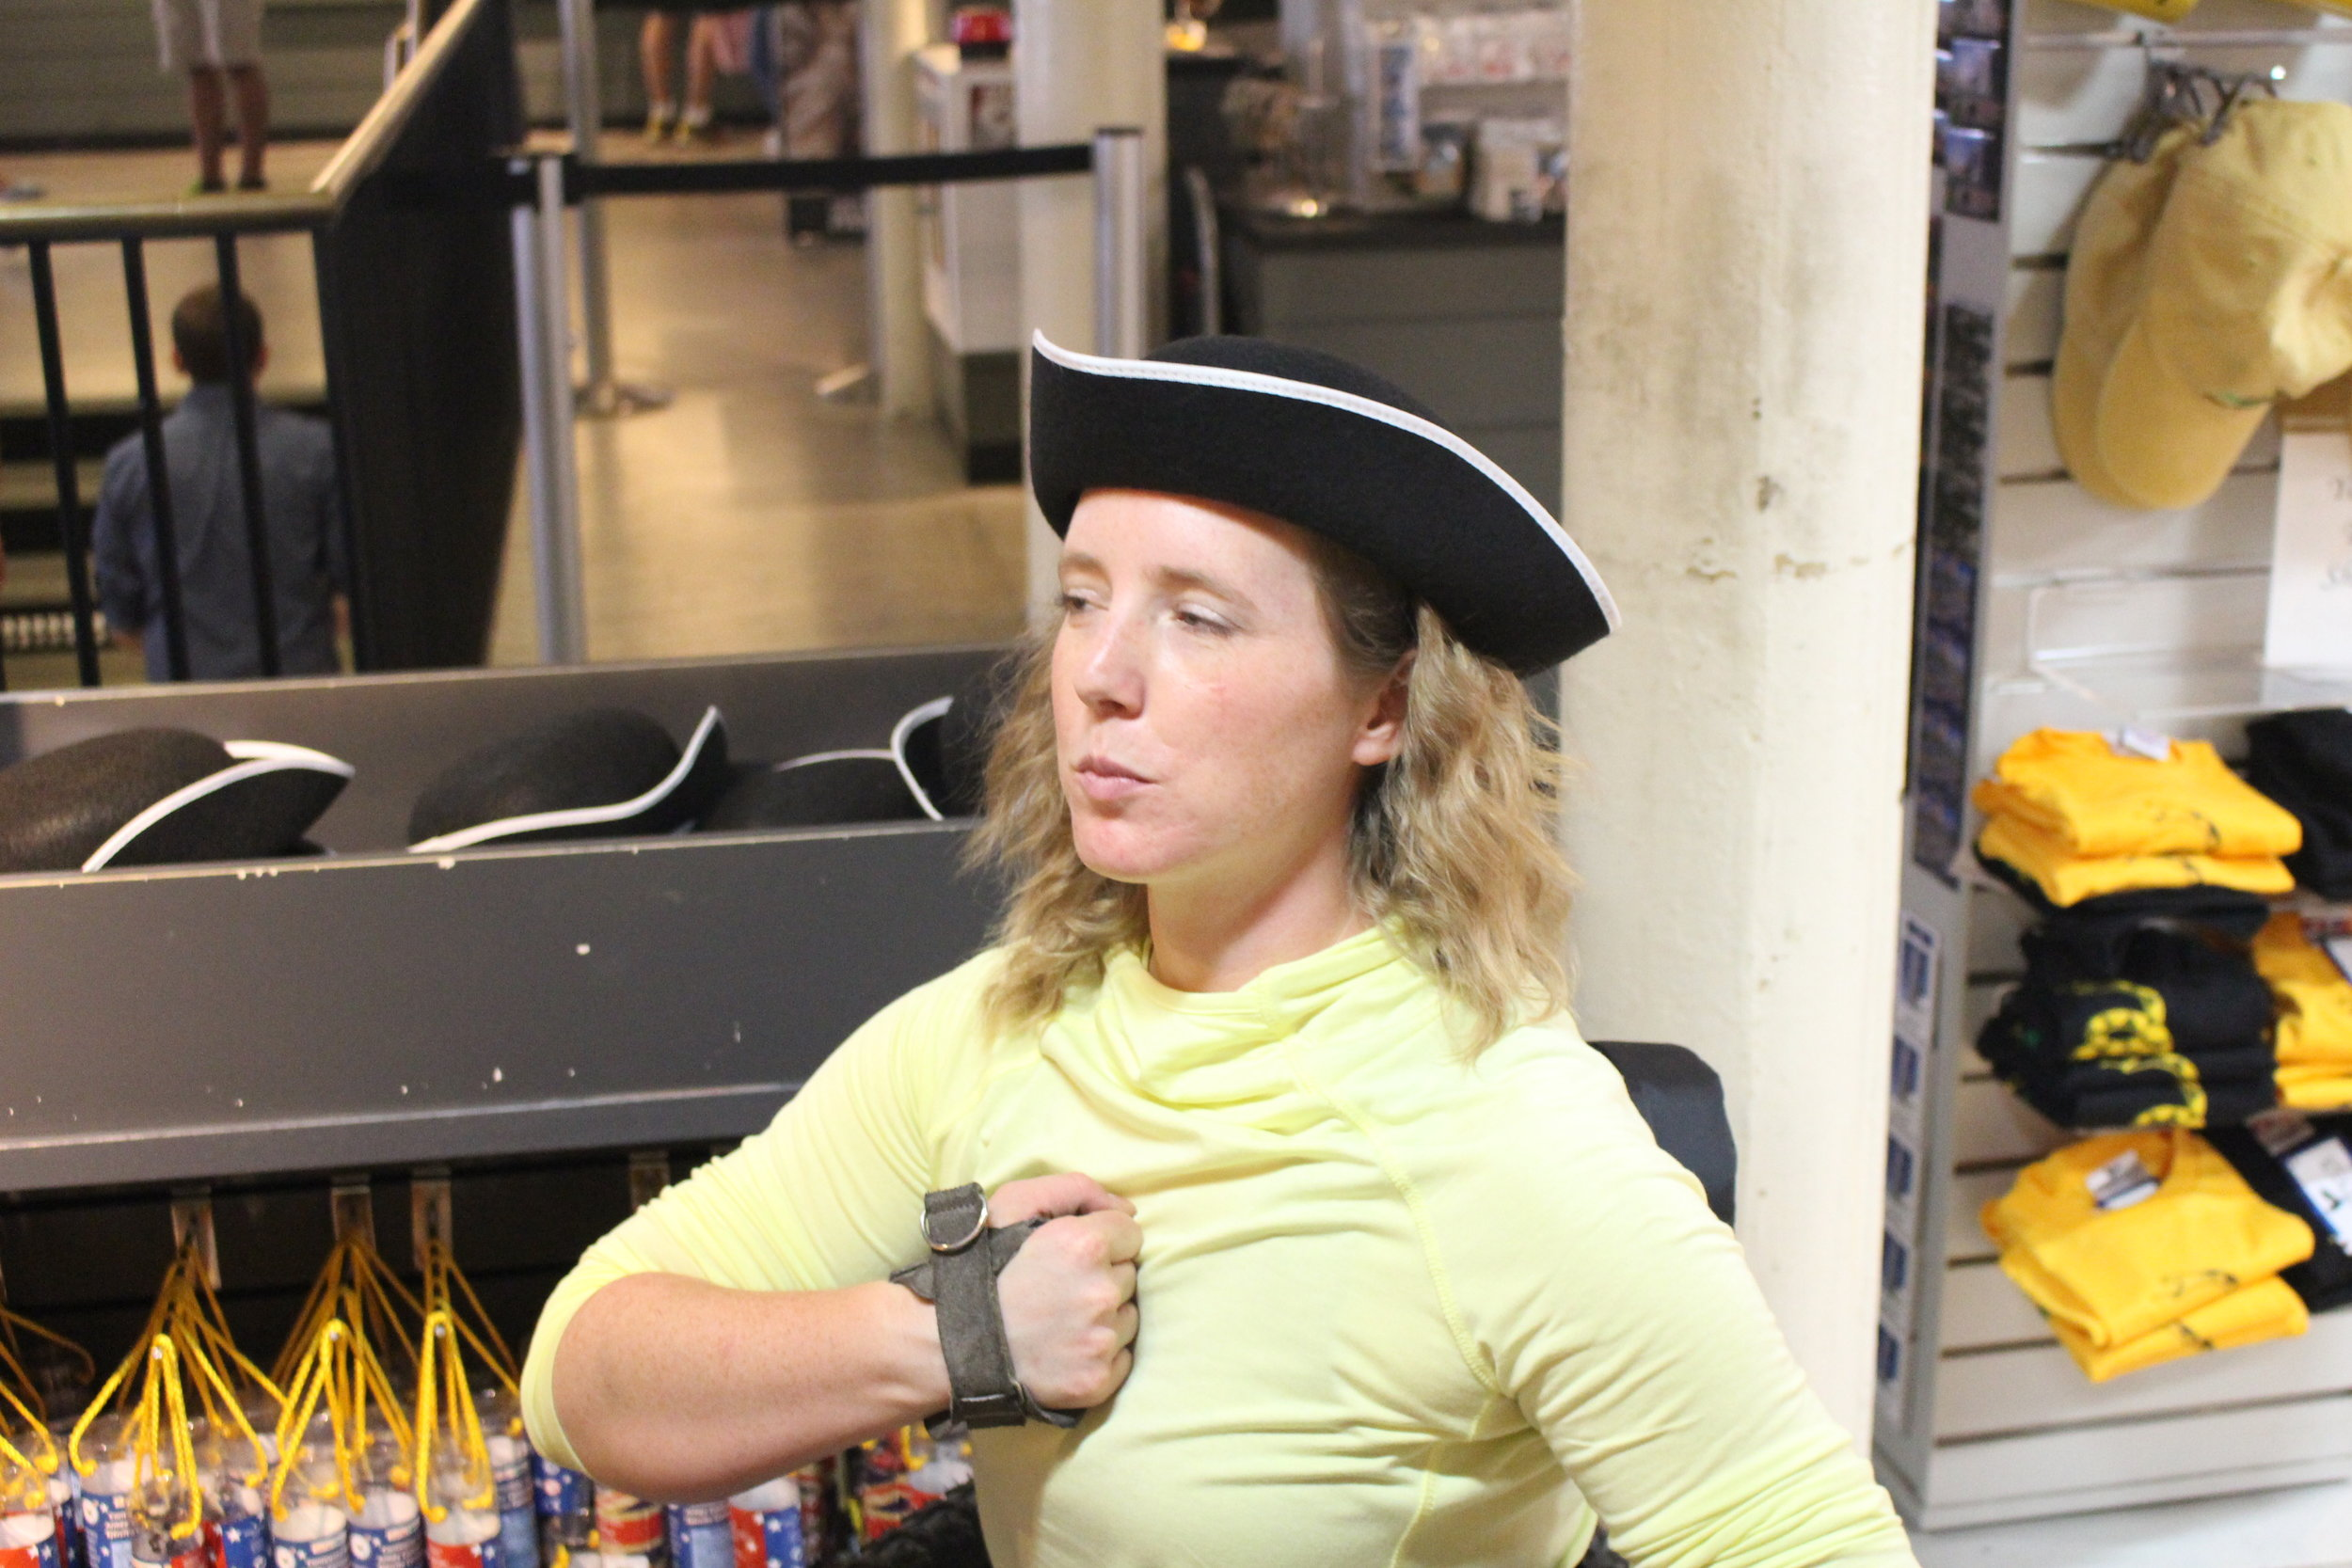 Just goofing off a little in one of the many gift shops along the Freedom Trail's route!